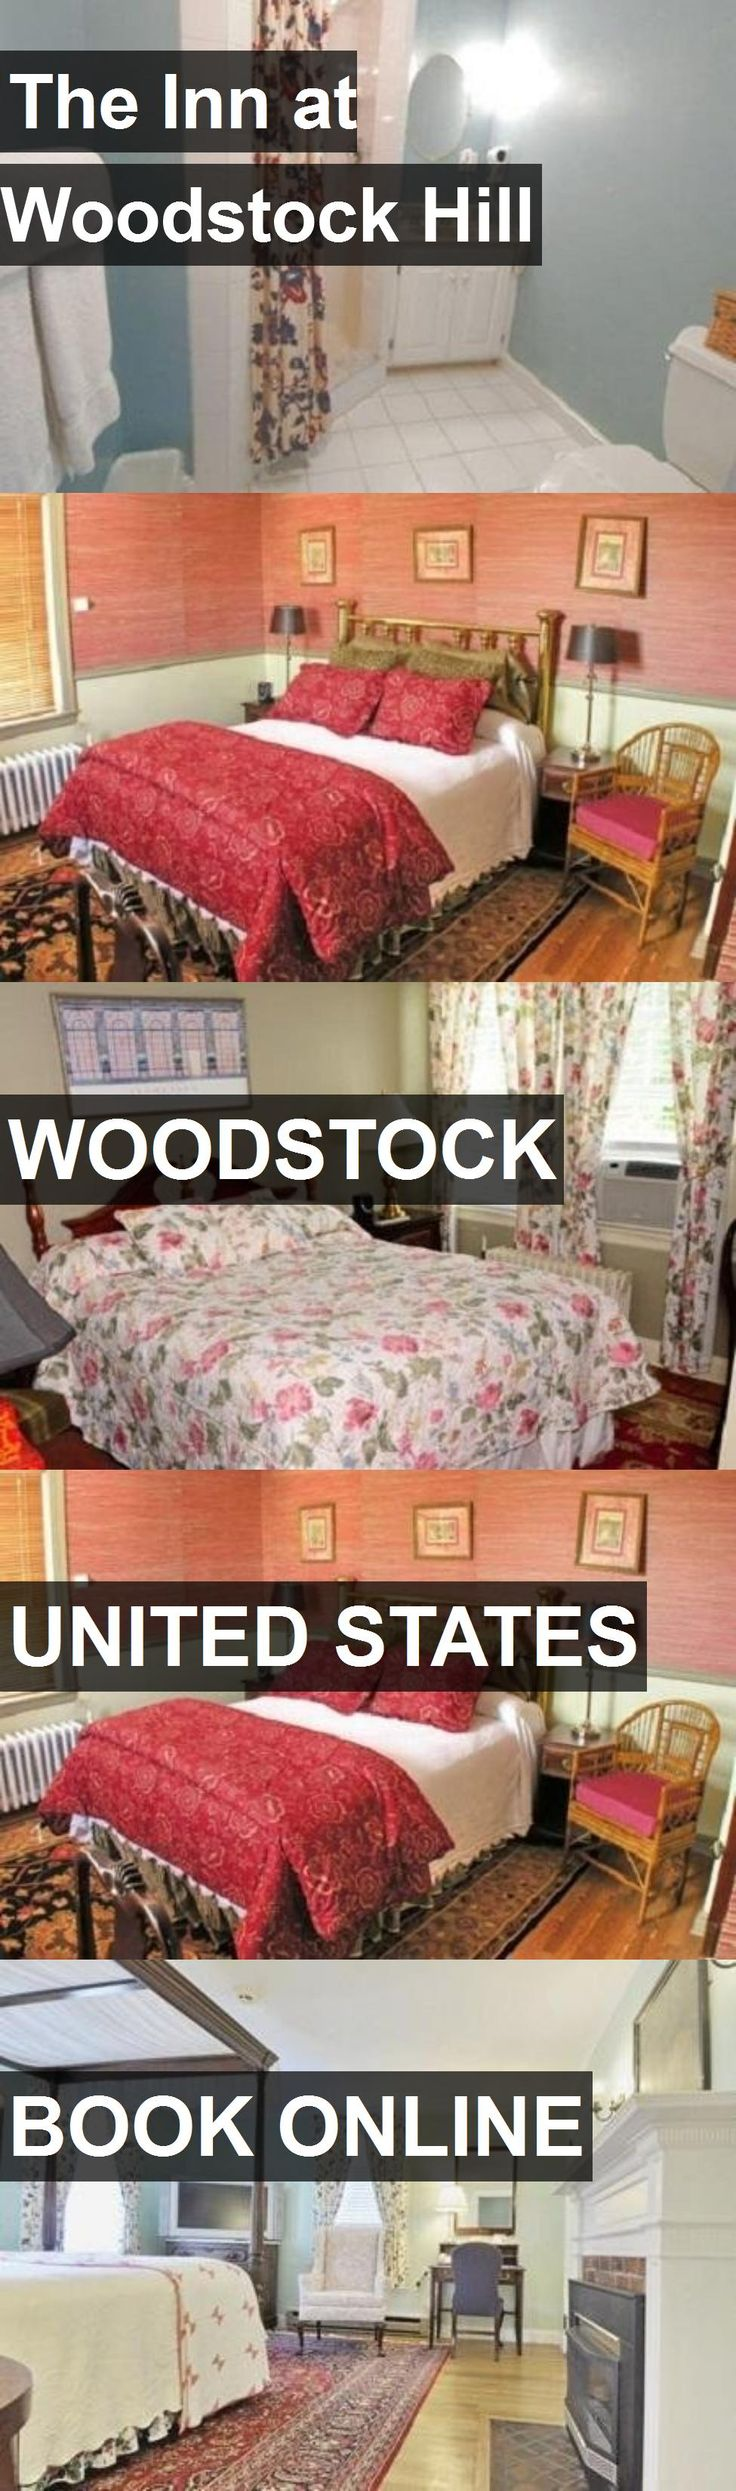 Hotel The Inn at Woodstock Hill in Woodstock, United States. For more information, photos, reviews and best prices please follow the link. #UnitedStates #Woodstock #TheInnatWoodstockHill #hotel #travel #vacation